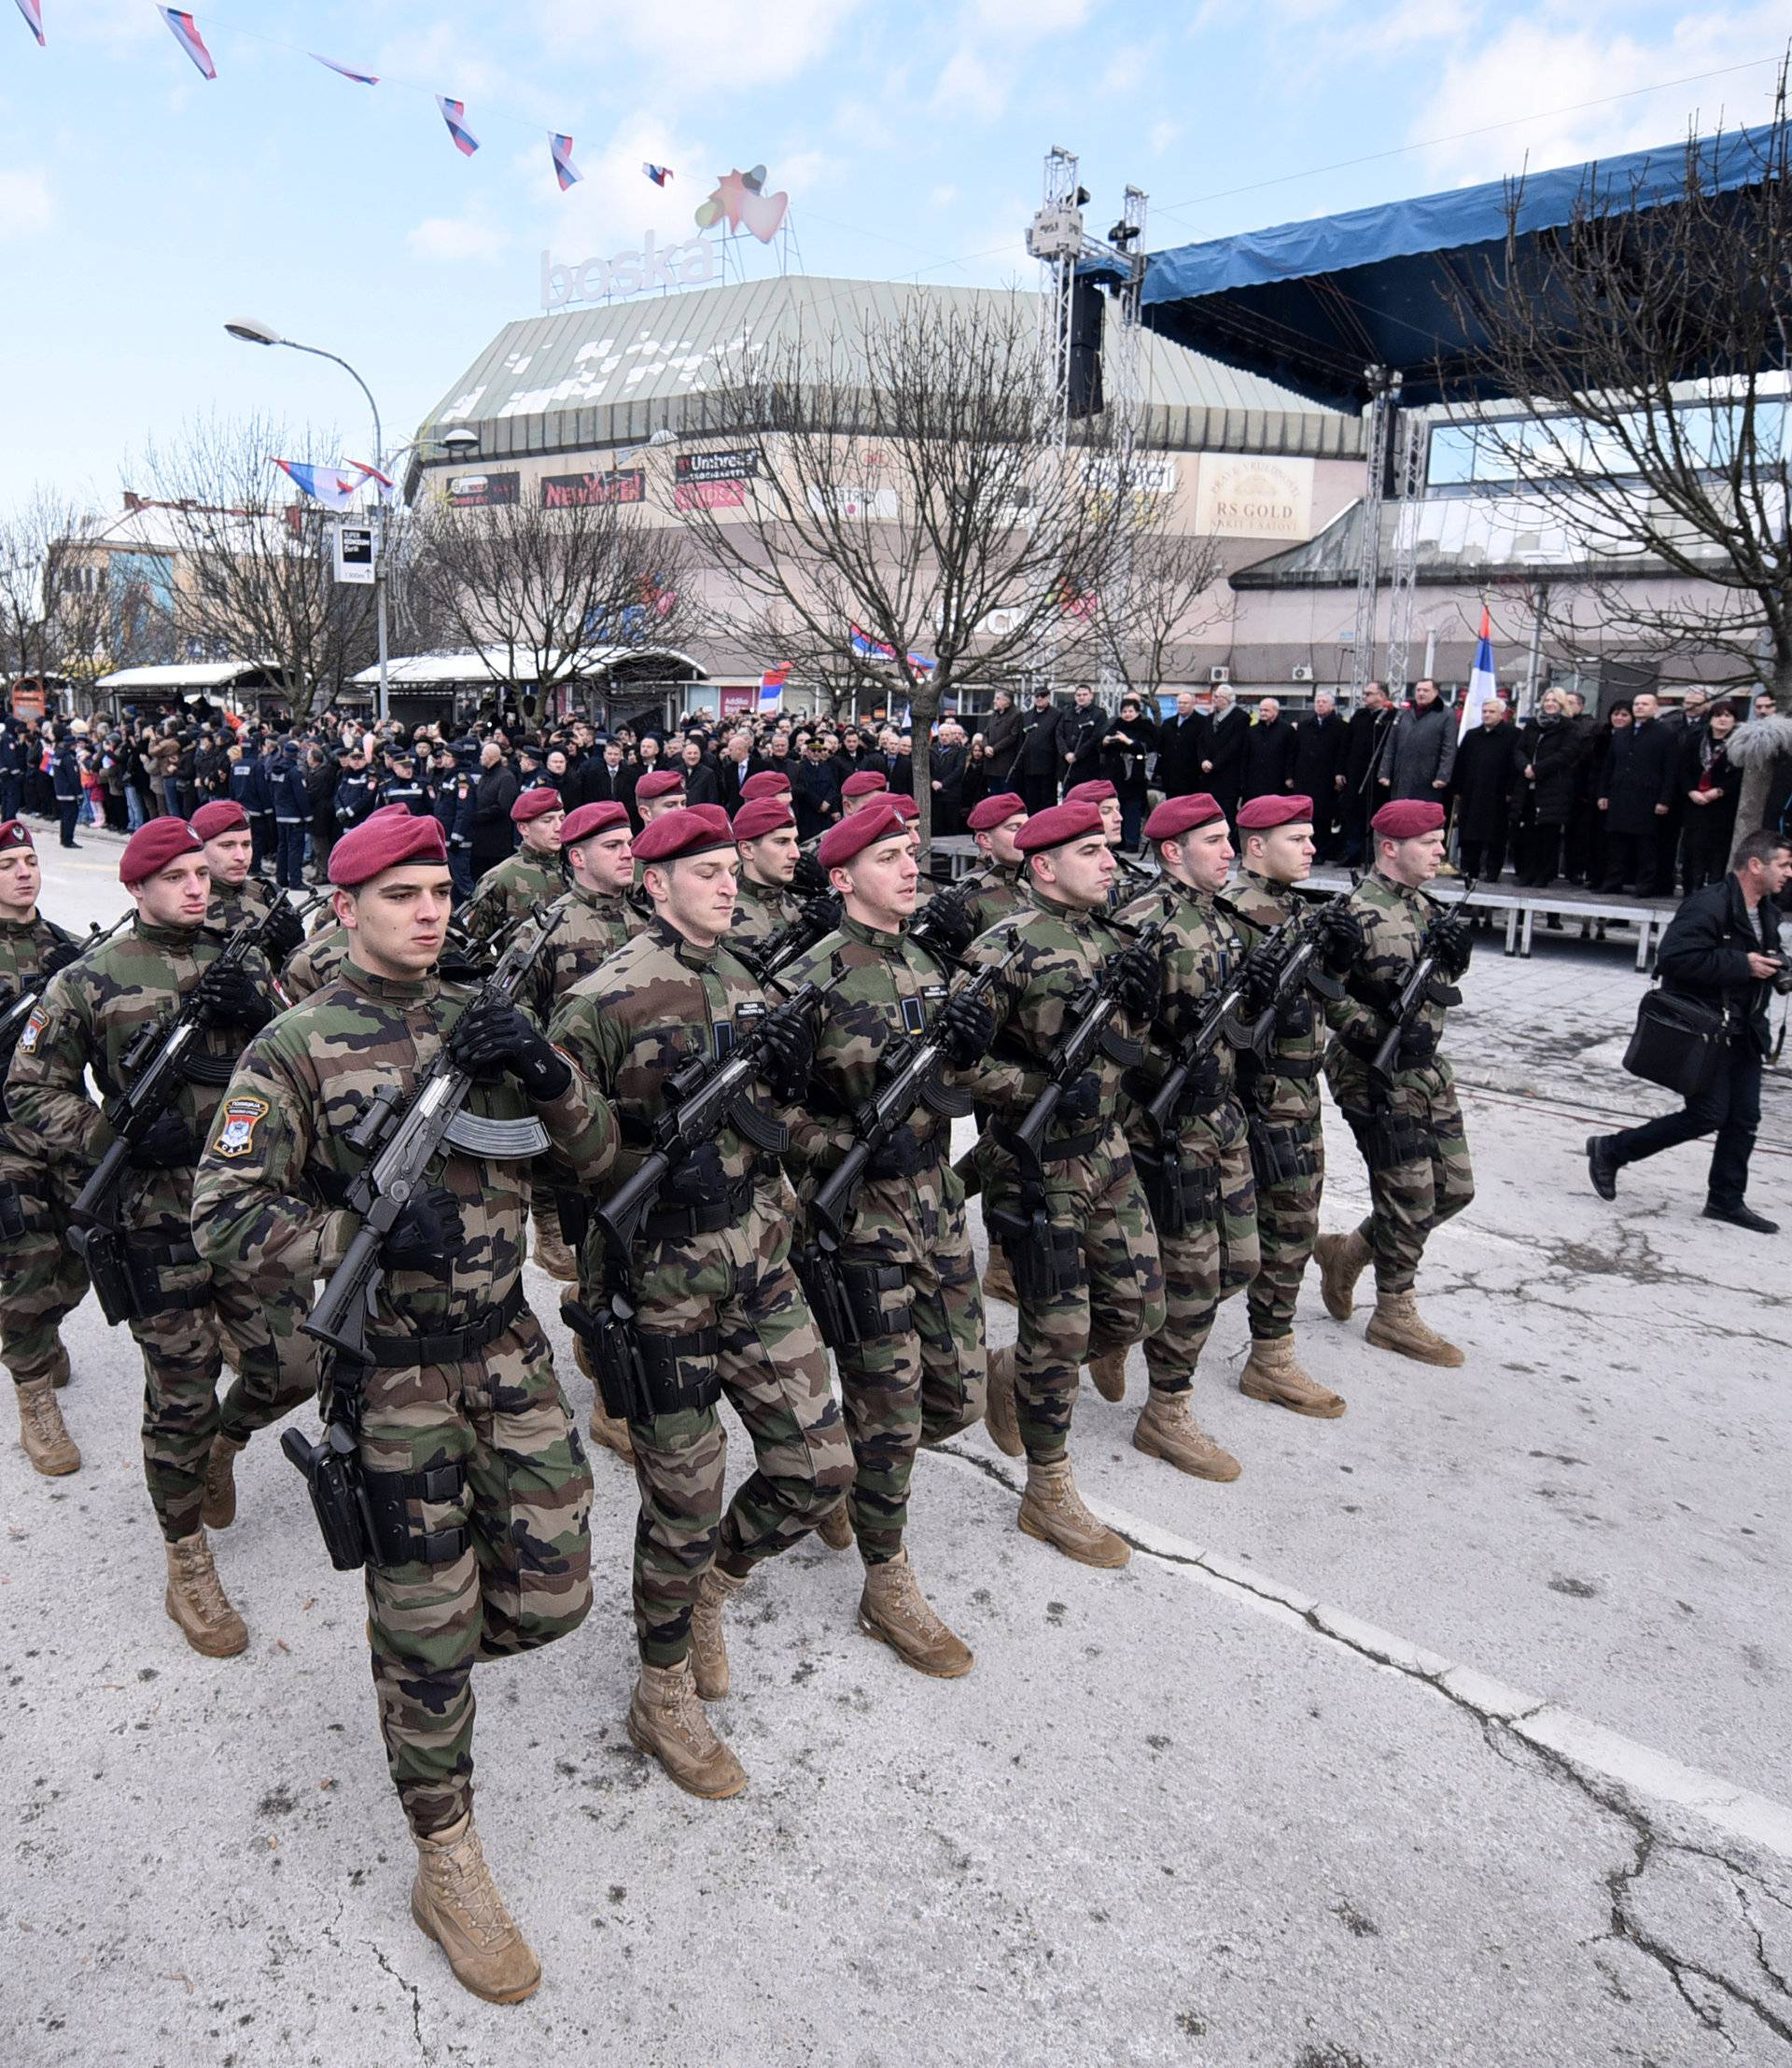 Members of special police forces of Republic of Srpska march during a parade marking the anniversary of Republic of Srpska in Banja Luka